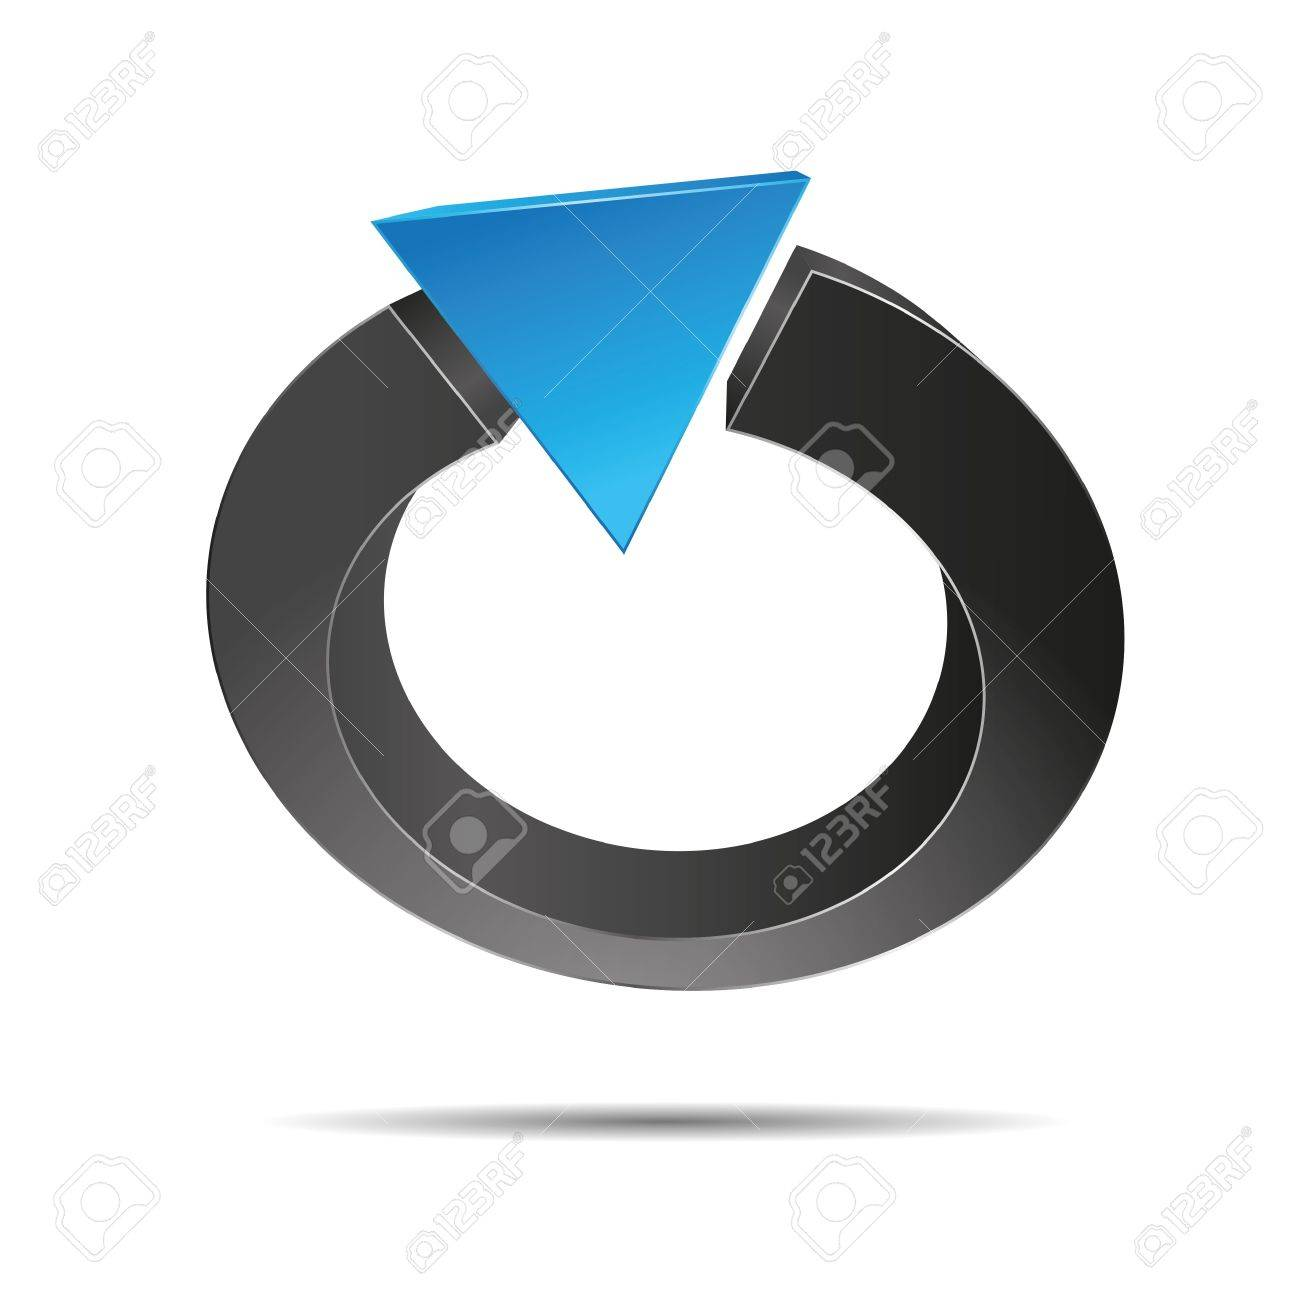 3D abstract ring pearl triangular pyramid jewelry blue ocean water symbol corporate design icon logo trademark Stock Vector - 15574167